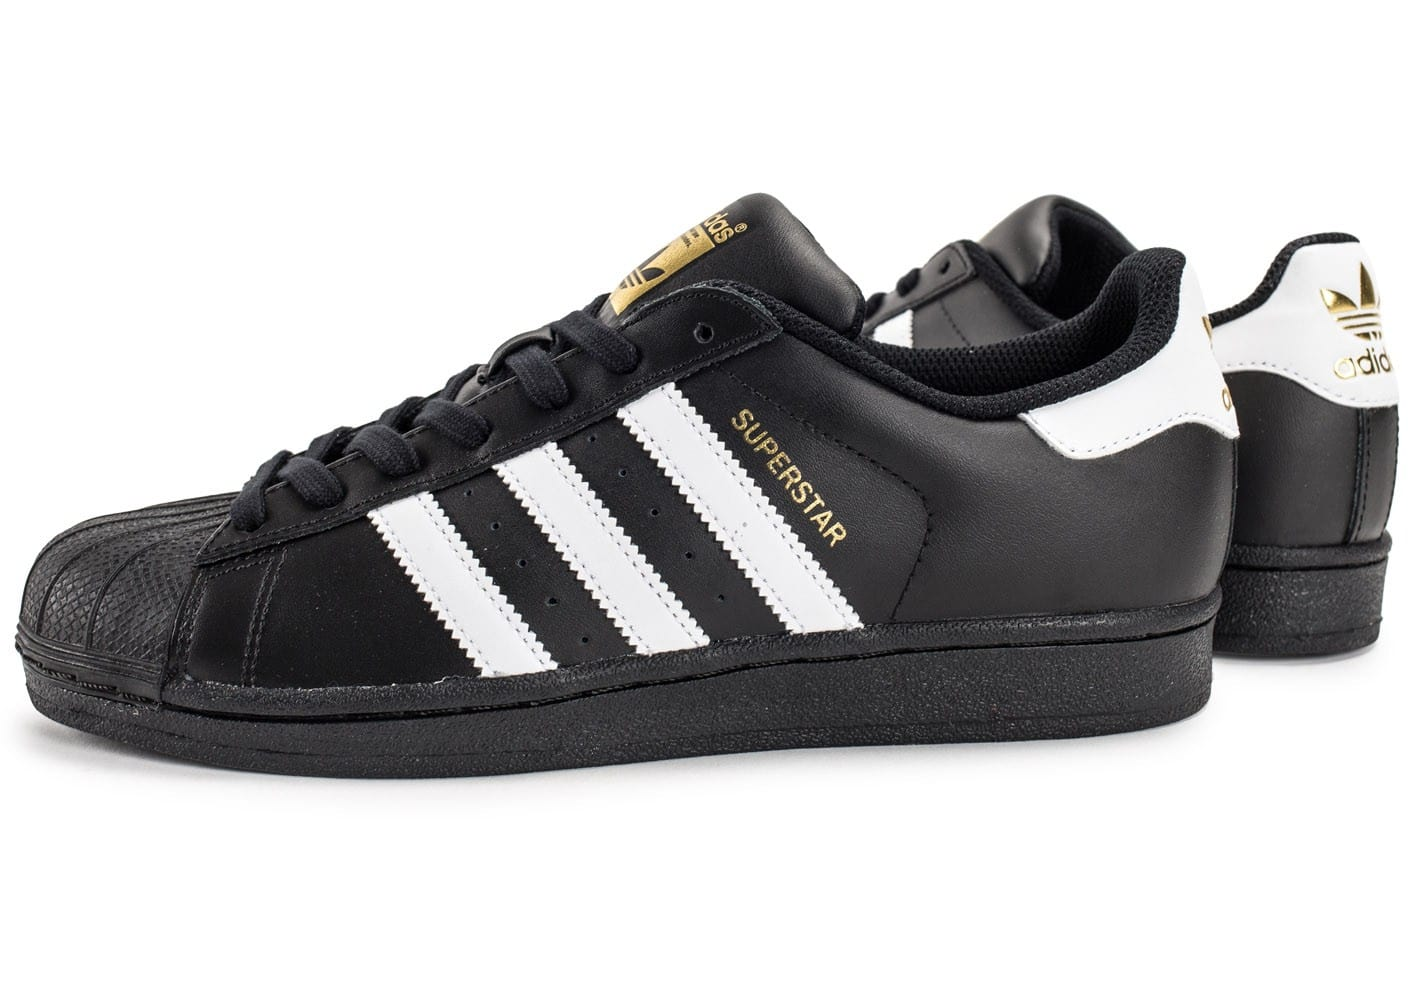 Superstar Homme Adidas Authentique Réduction Baskets Chausport EY677w